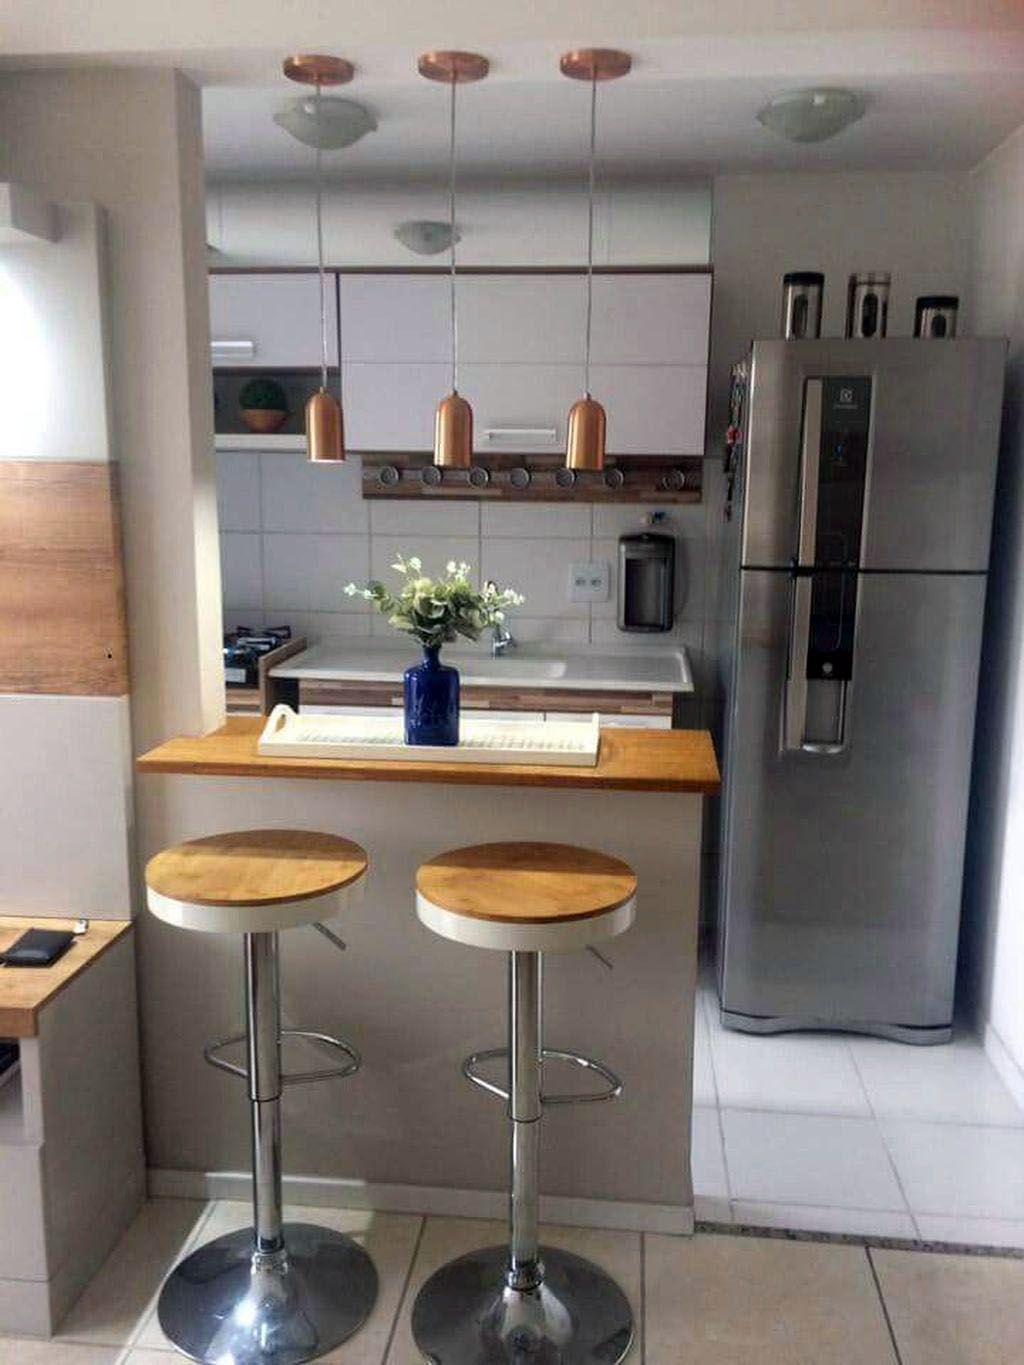 Smal Kitchen Ideas To Transform Your Portable Room Into A Smart Super Organised Space Tiny Kitchen Design Kitchen Design Small Kitchen Design